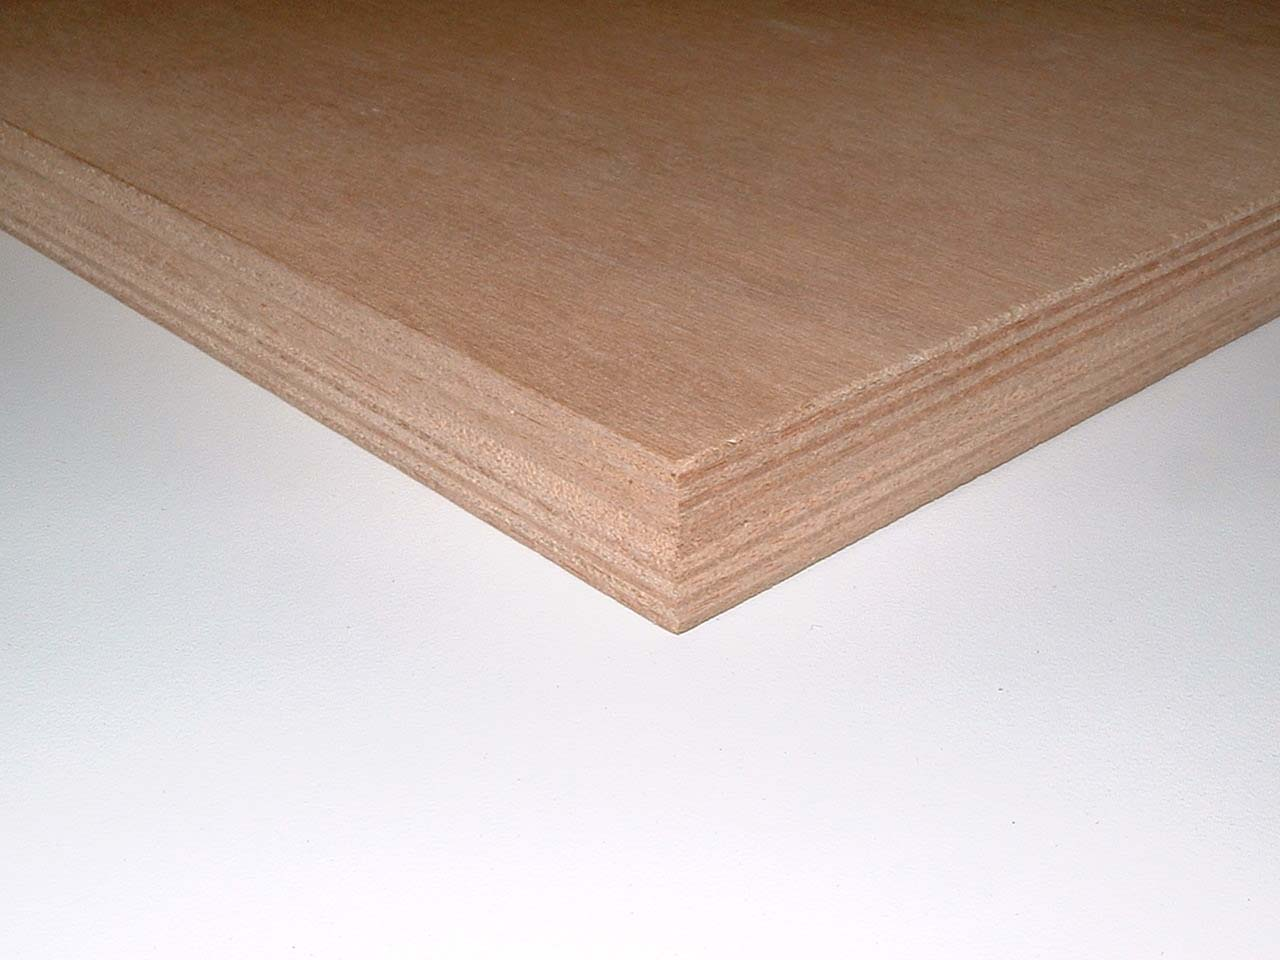 Weight Of Lumber Plywood ~ Okoume a b bs lloyds approved